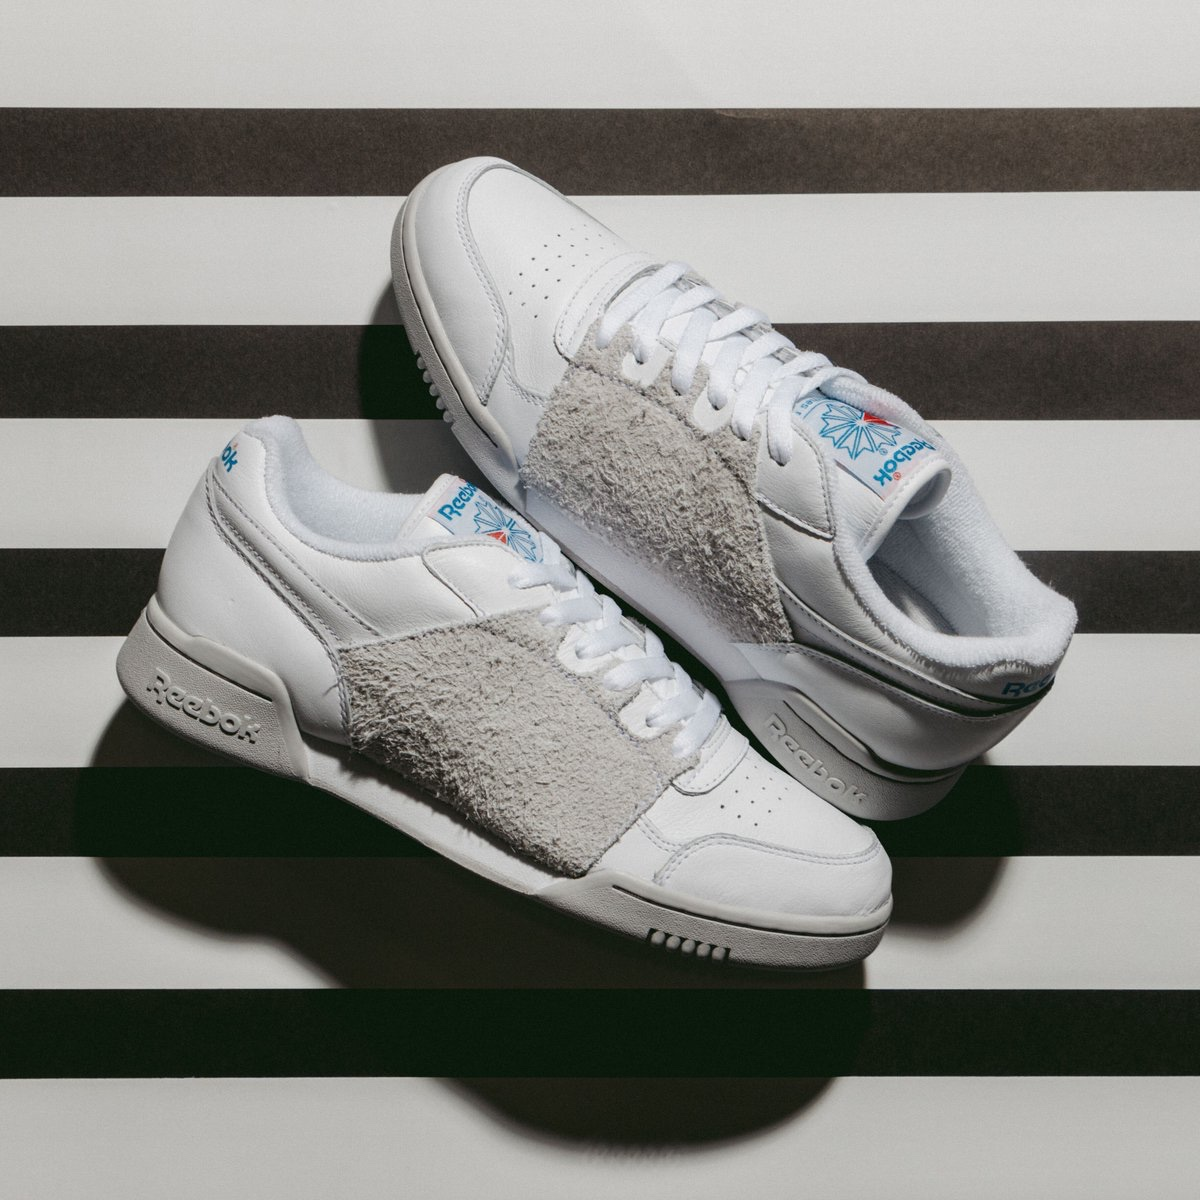 big discount of 2019 attractivefashion 2019 authentic Reebok x Nepenthes Workout Plus in a White, steel... - Depop